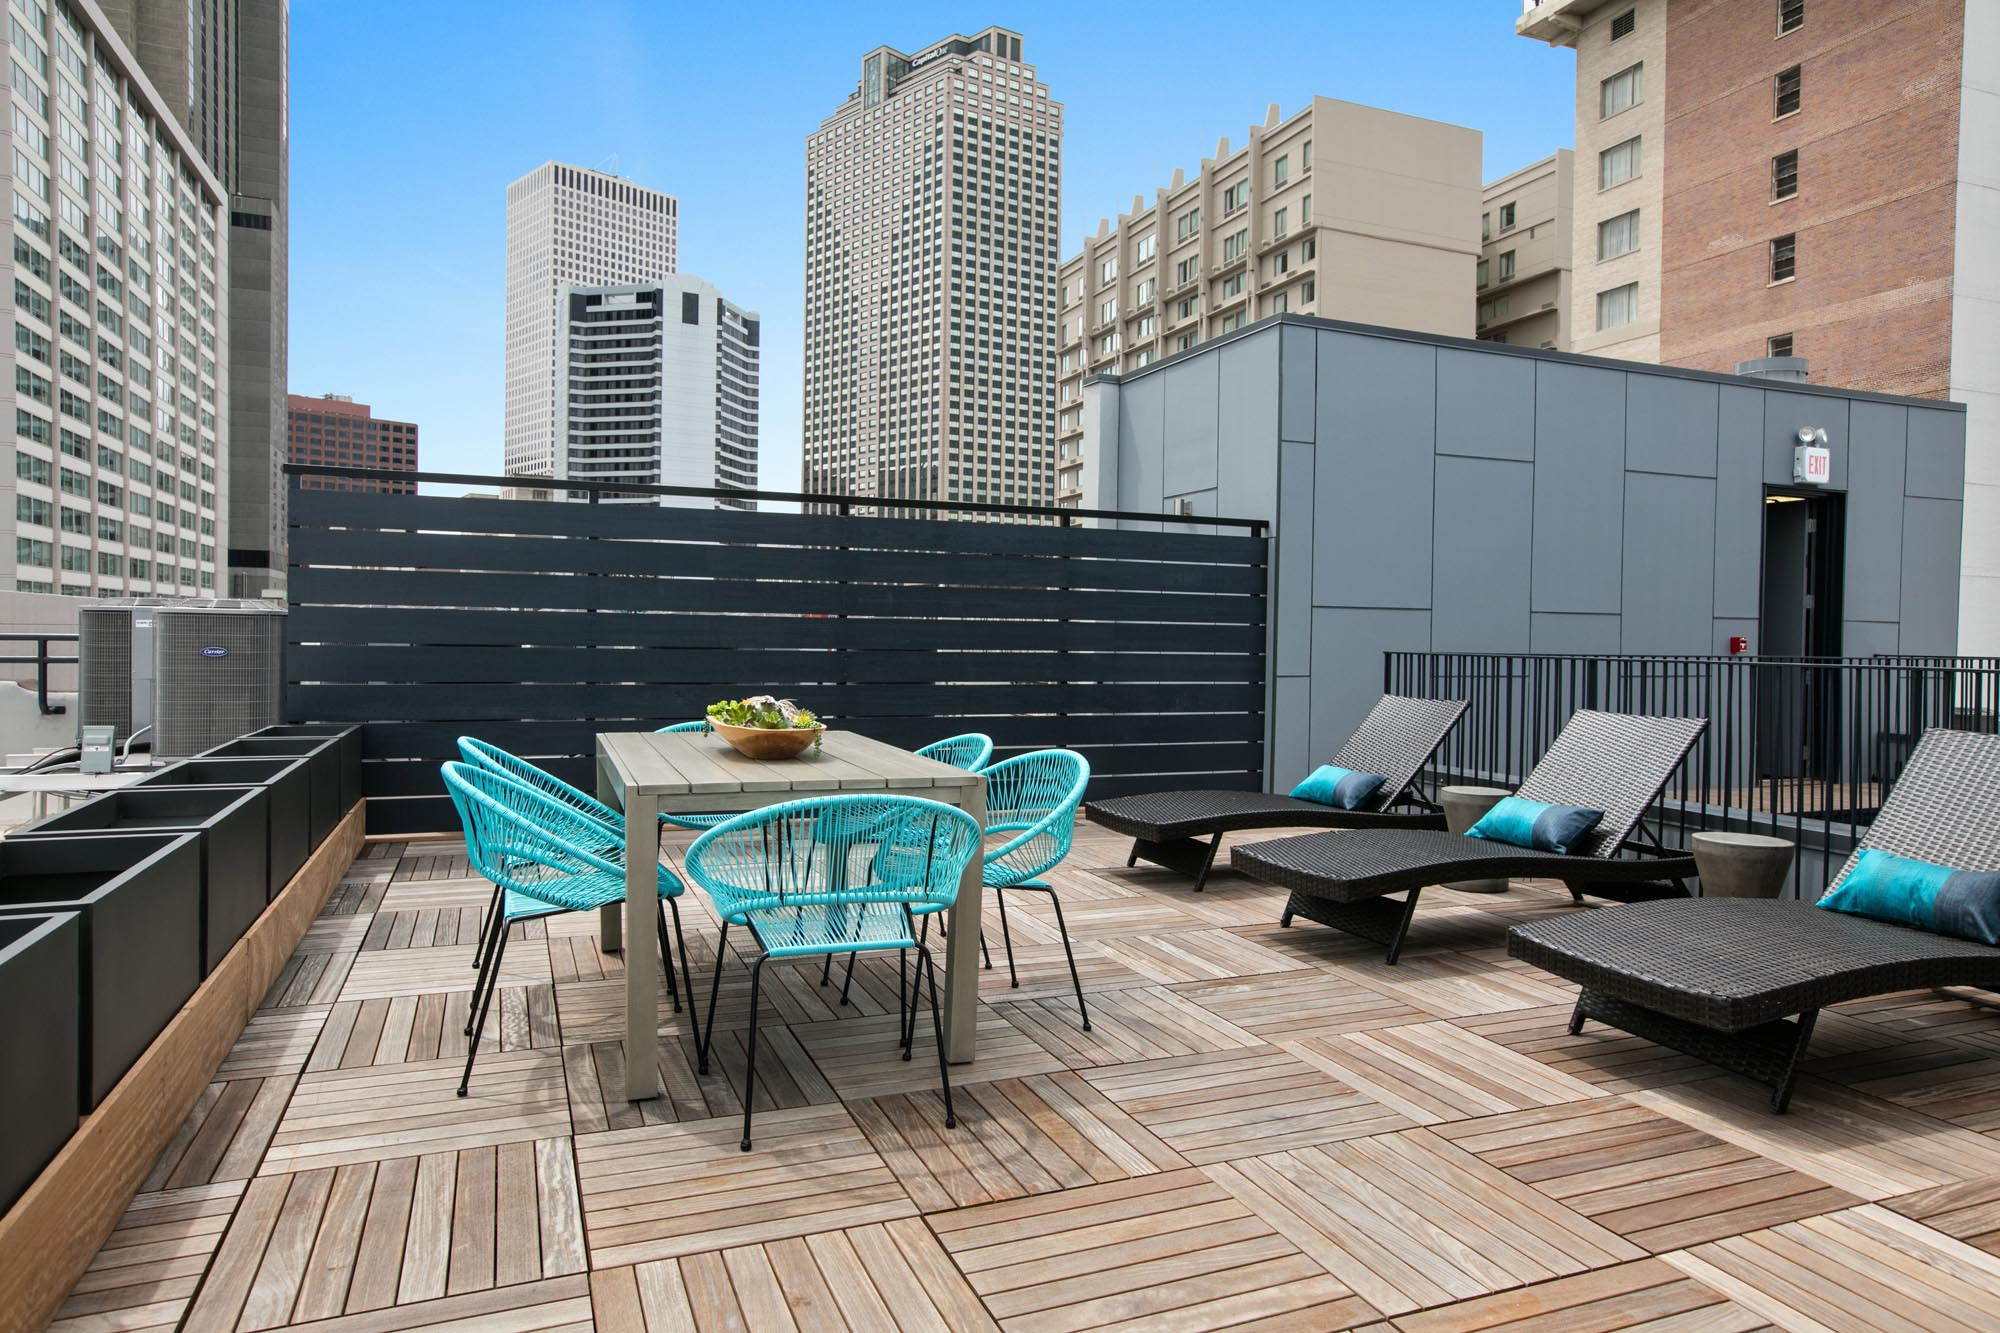 Large rooftop space with wicker beach chairs